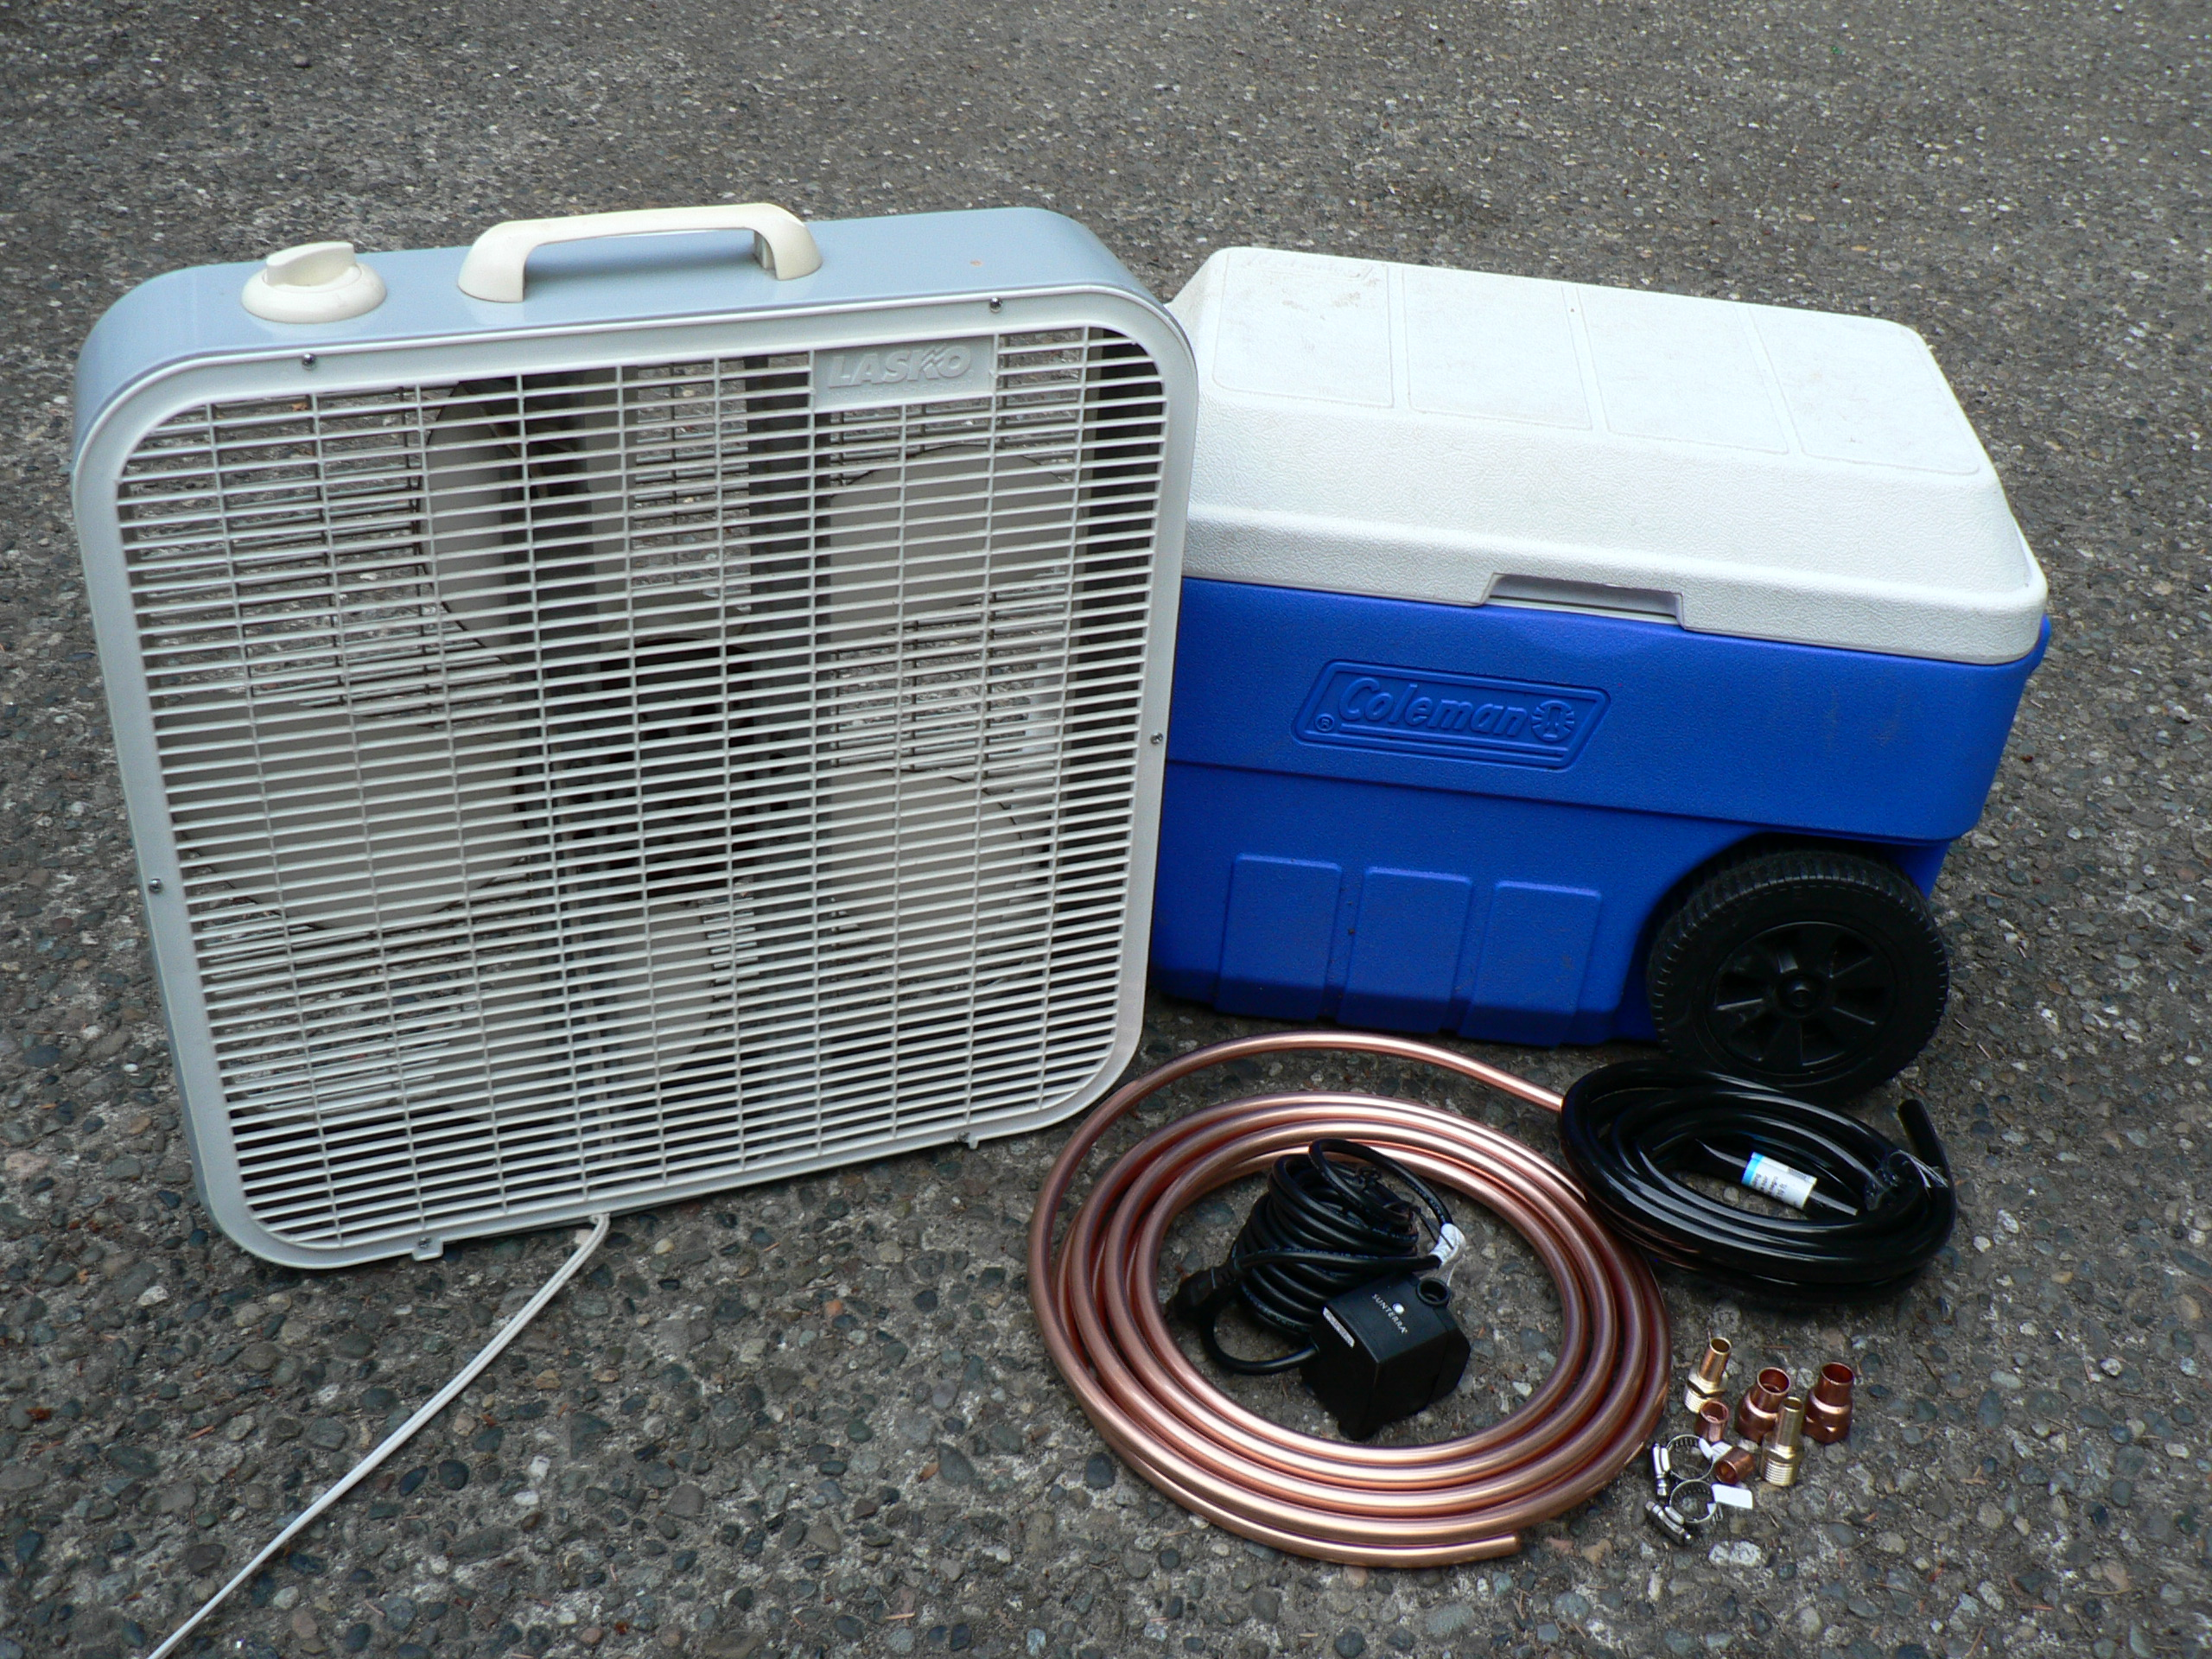 How To Make Your Own Homemade Air Conditioner Swamp Cooler Power Supply Wiring Diagram Components